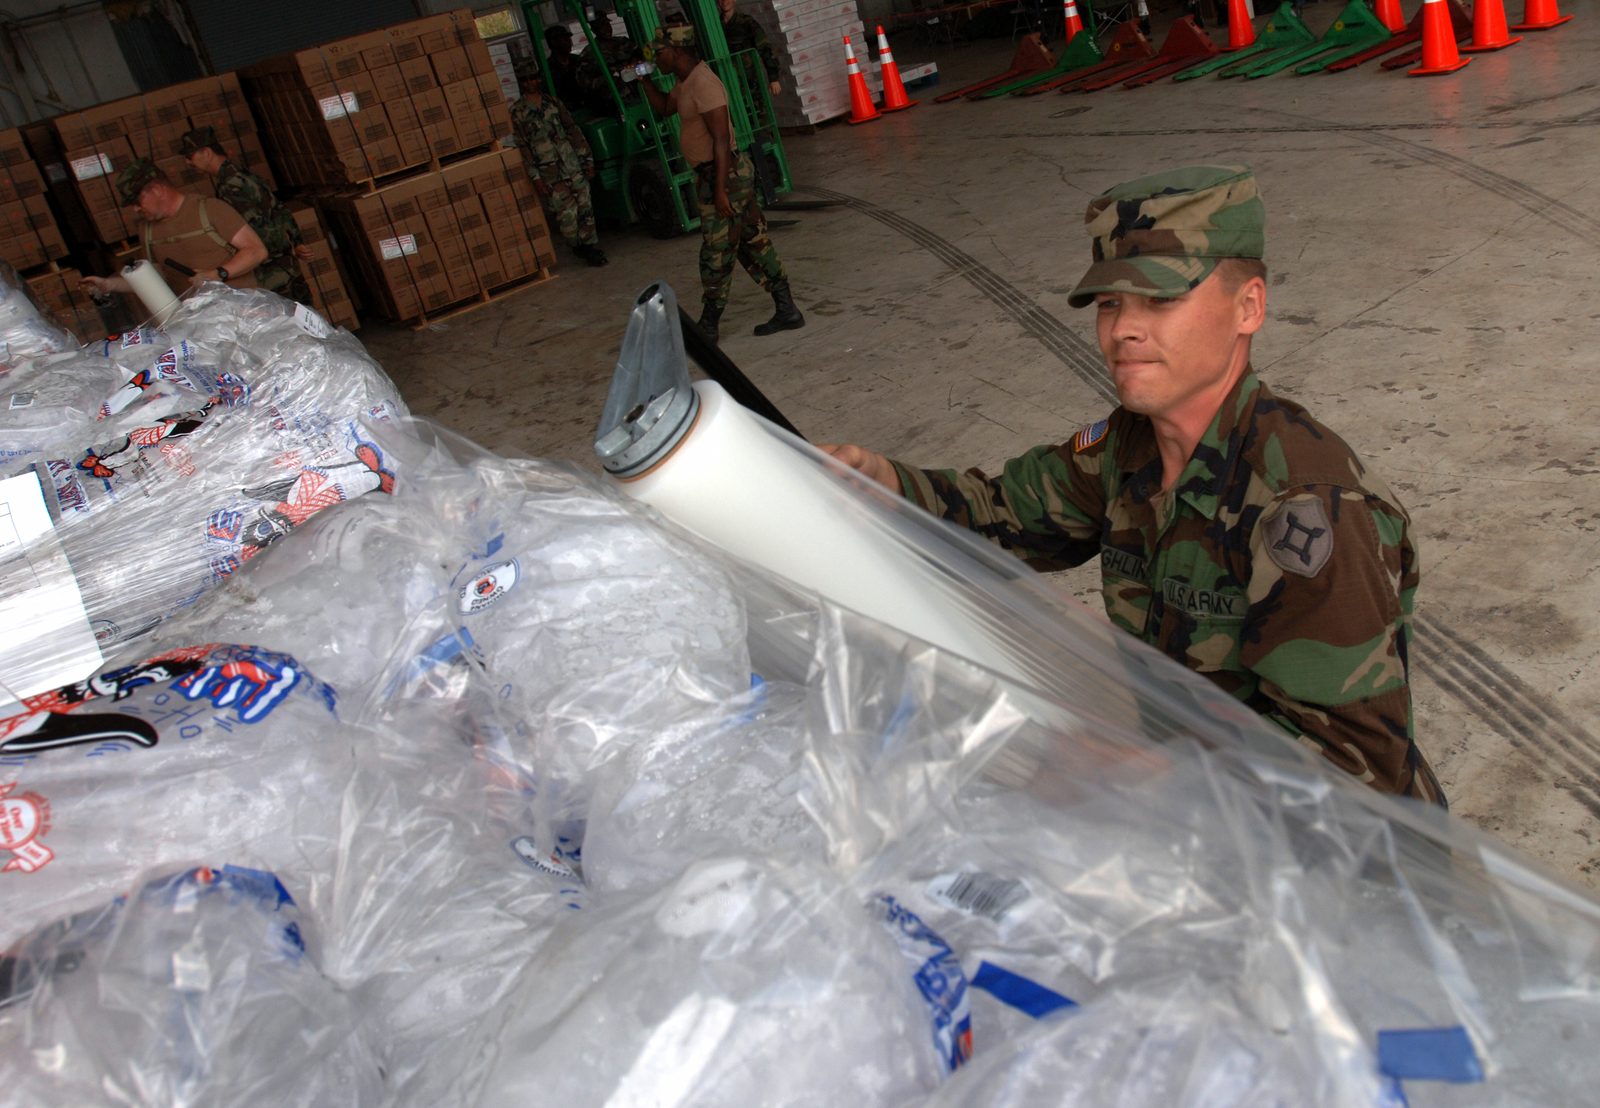 [Hurricane Wilma] Homestead, FL, October 30, 2005 -- National Guardsmen Steven Laughlin, of Ocala, wraps pallets of ice in a hanger at the Air Force Base which is being used as a staging area for both water and ice distribution for areas impacted by Hurricane Wilma.  Jocelyn Augusitno/FEMA